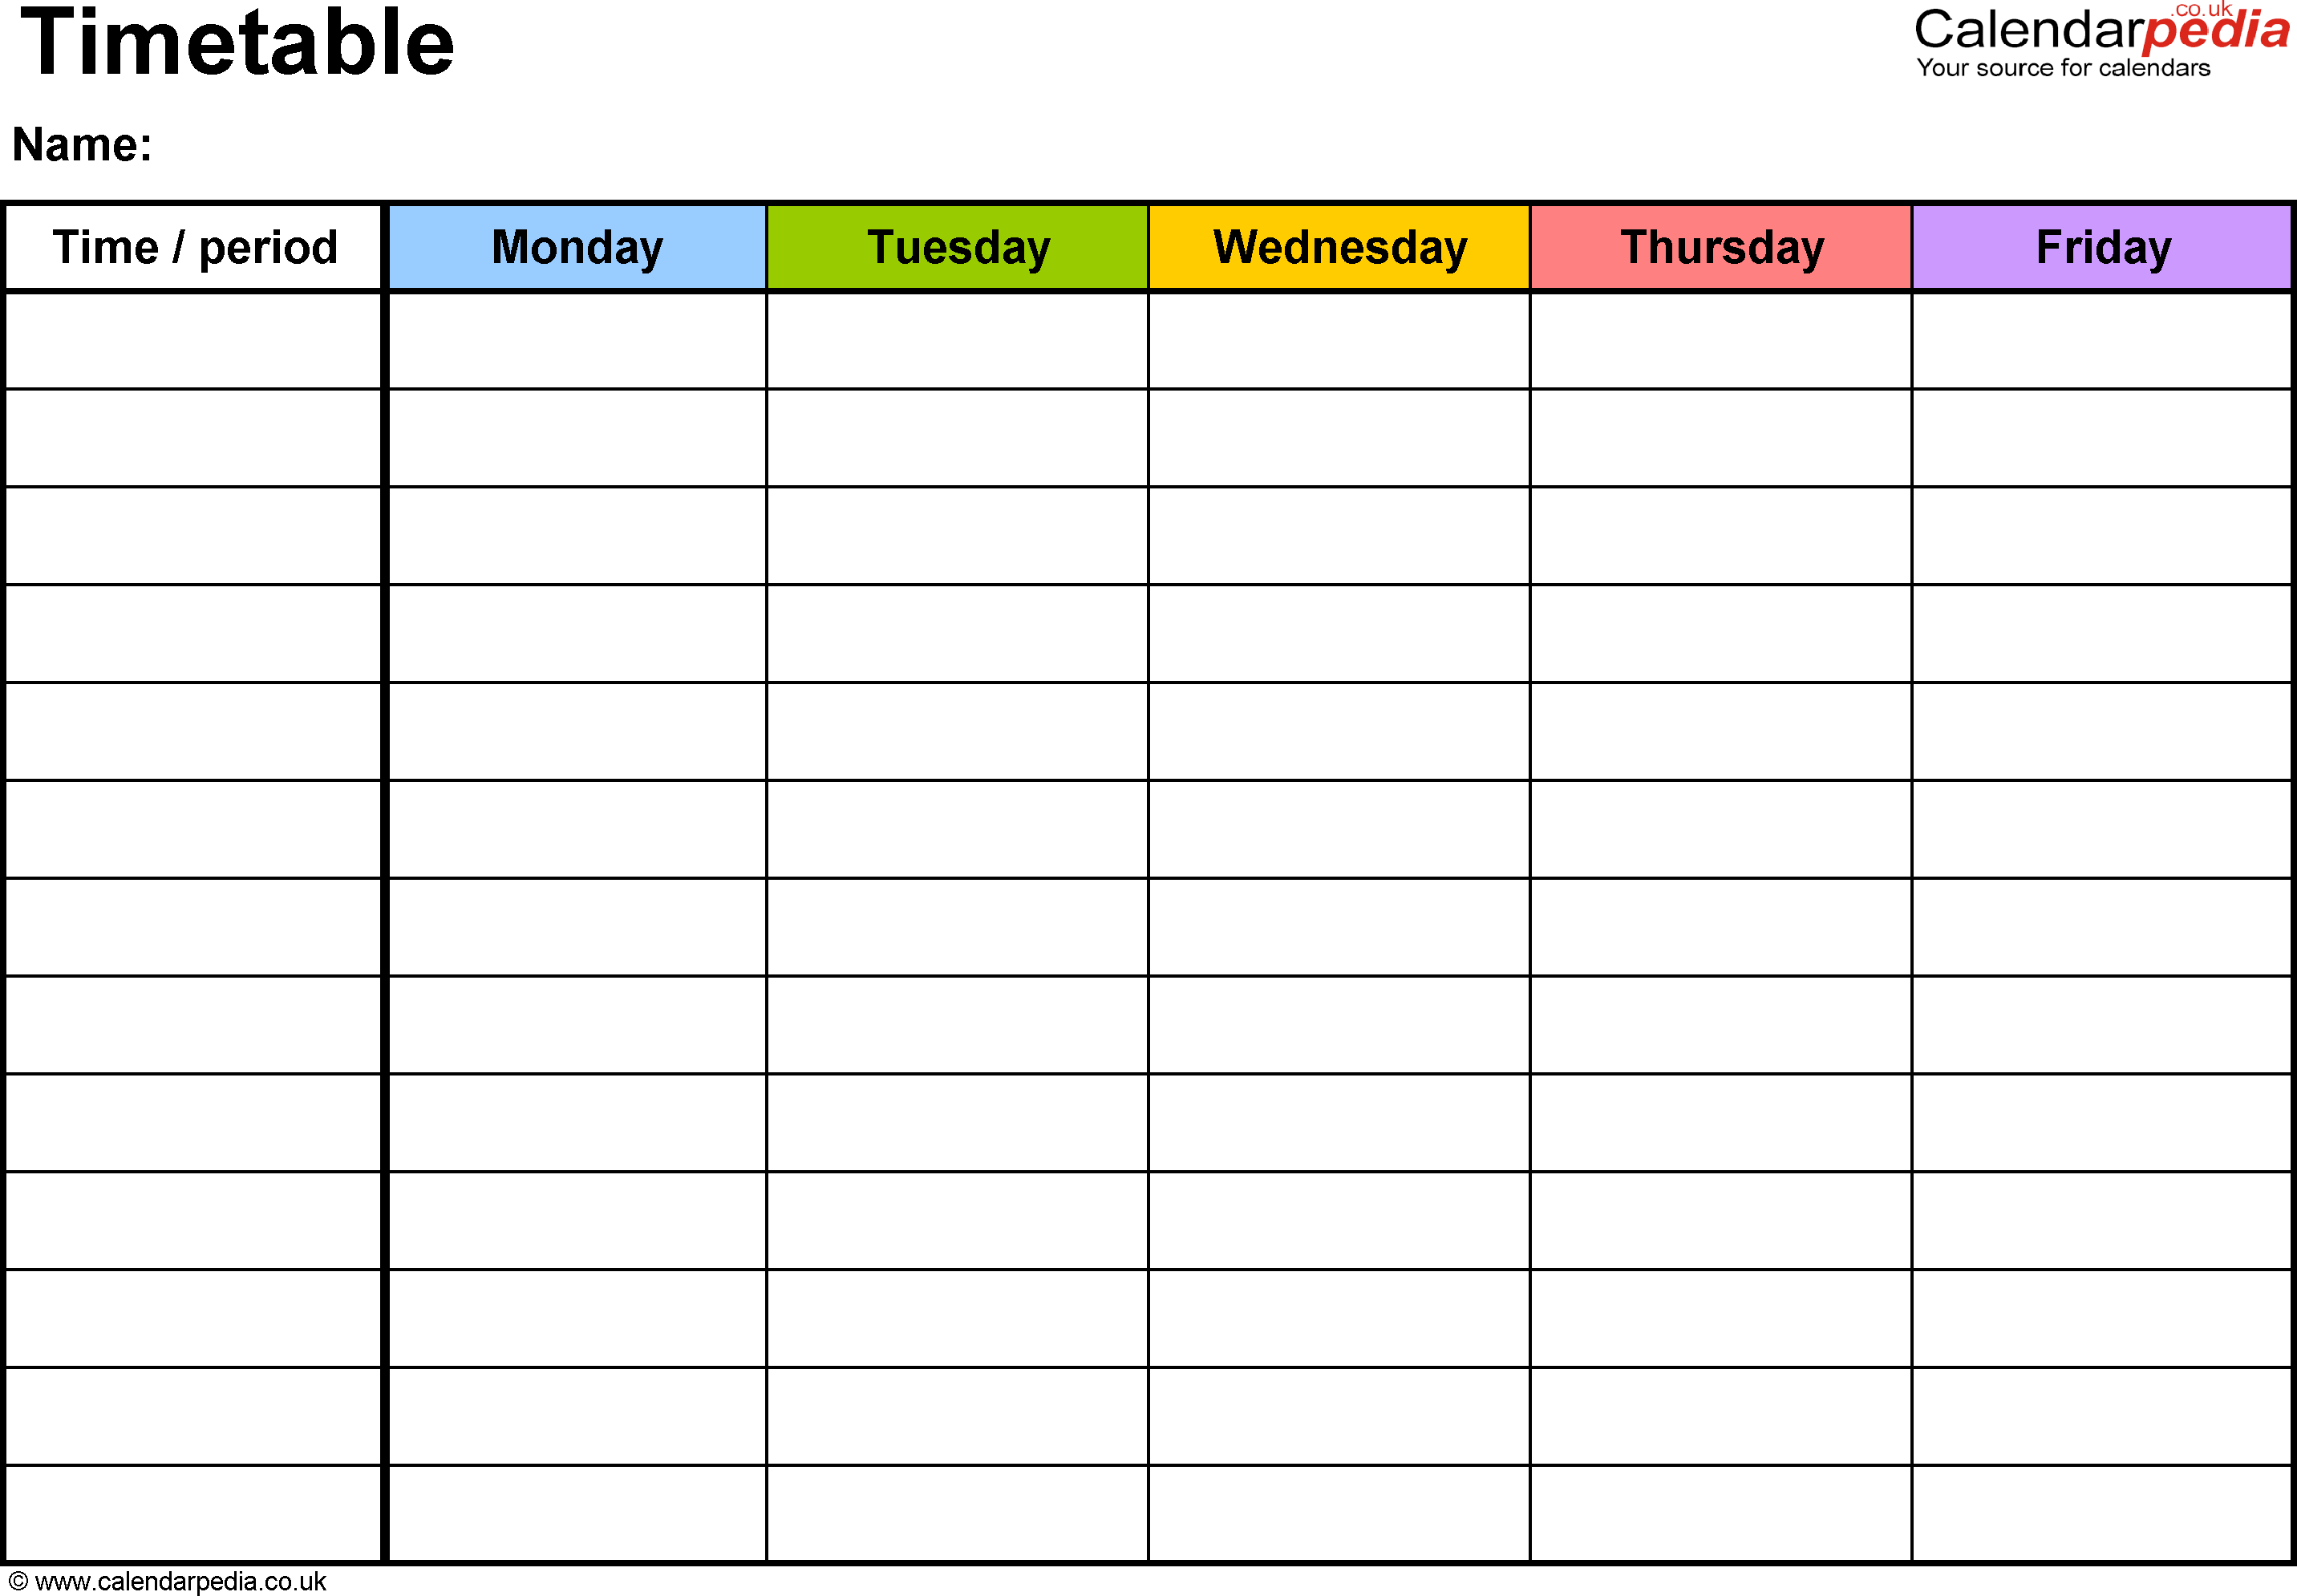 Timetable Template 2 Landscape Format A4 1 Page